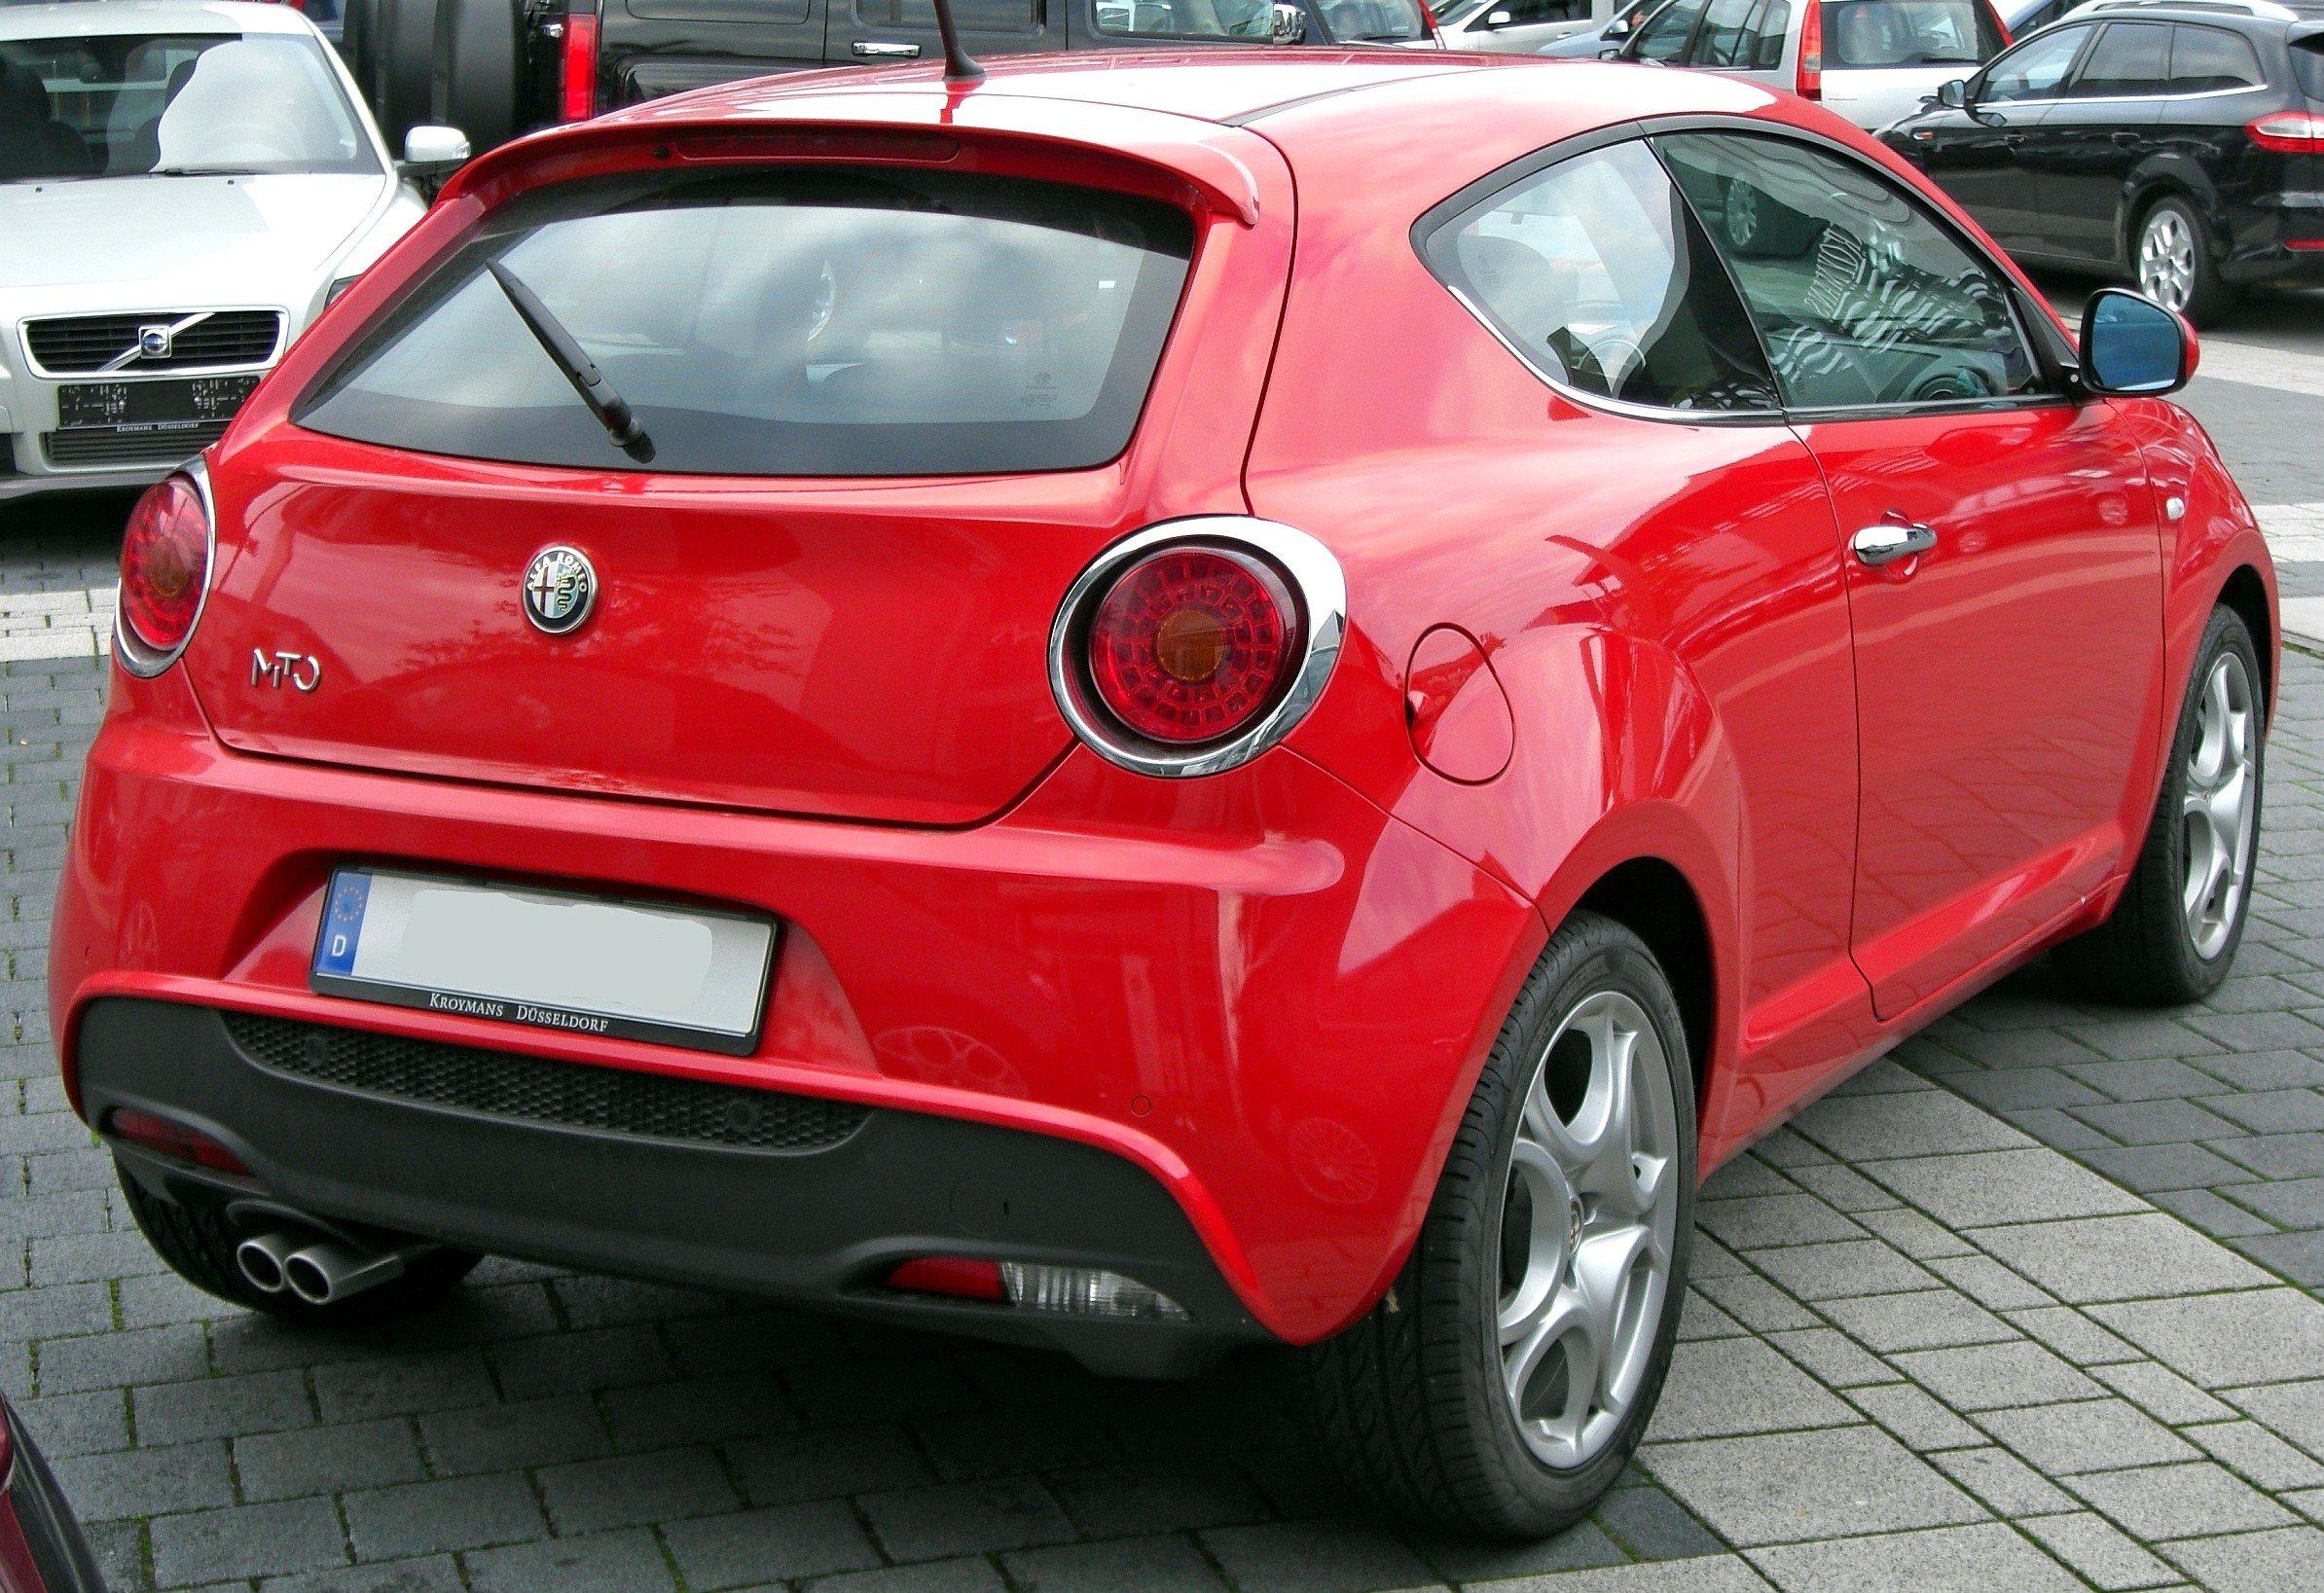 file alfa romeo mito 1 4 tb rear jpg wikimedia commons. Black Bedroom Furniture Sets. Home Design Ideas